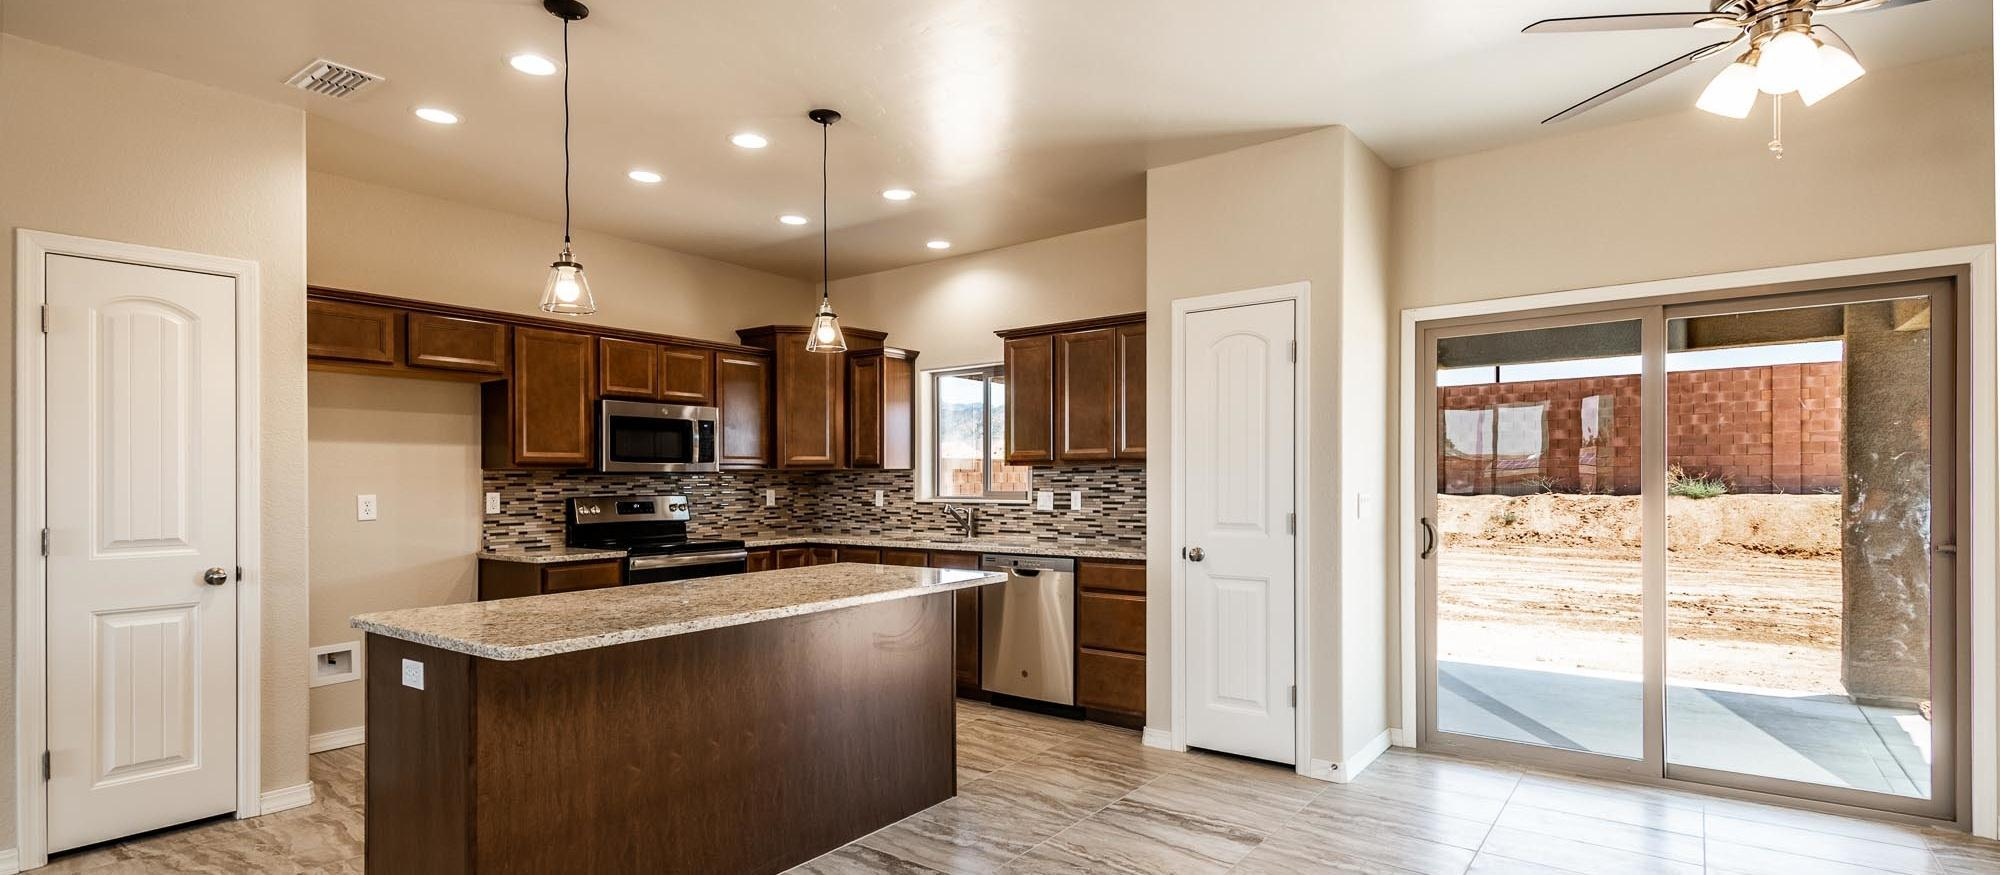 Kitchen featured in the Palo Verde 1768 By Angle Homes in Kingman-Lake Havasu City, AZ